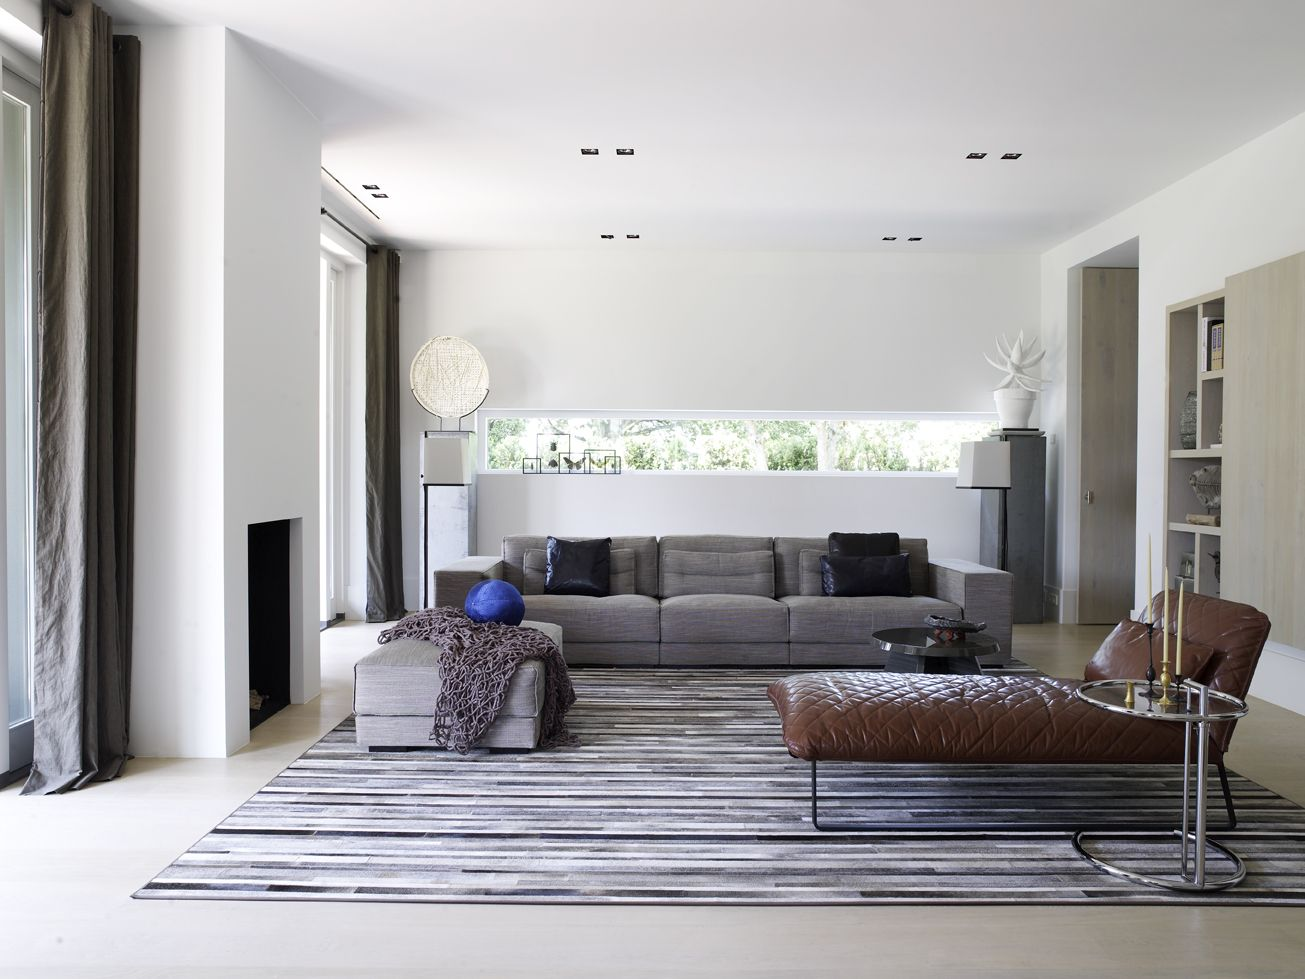 Piet Boon Styling by Karin Meyn | Living room; styling with ...